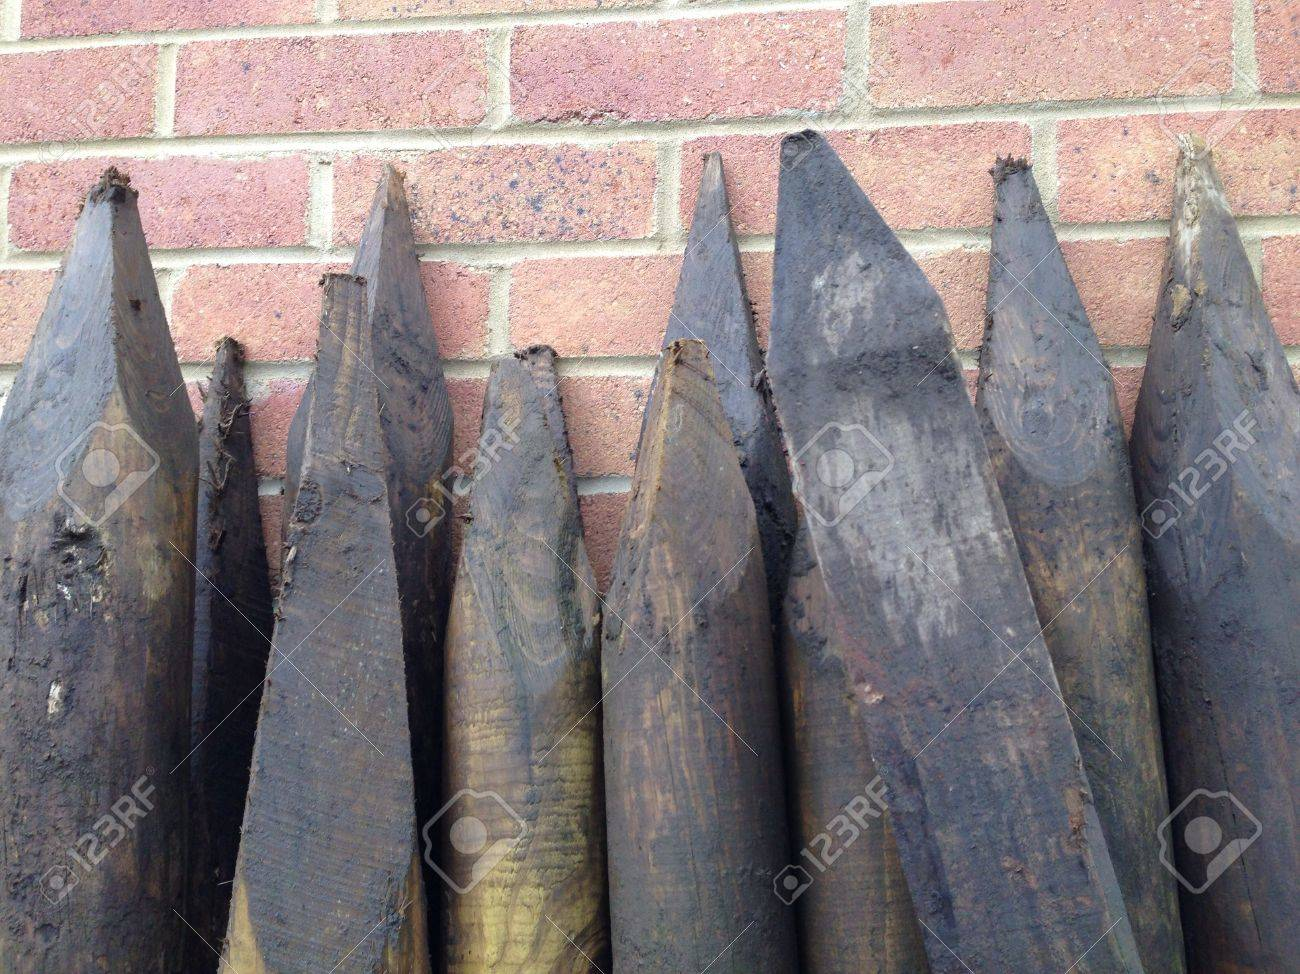 the sharpened pointed ends of wooden fence posts leaning against a brick wall stock photo